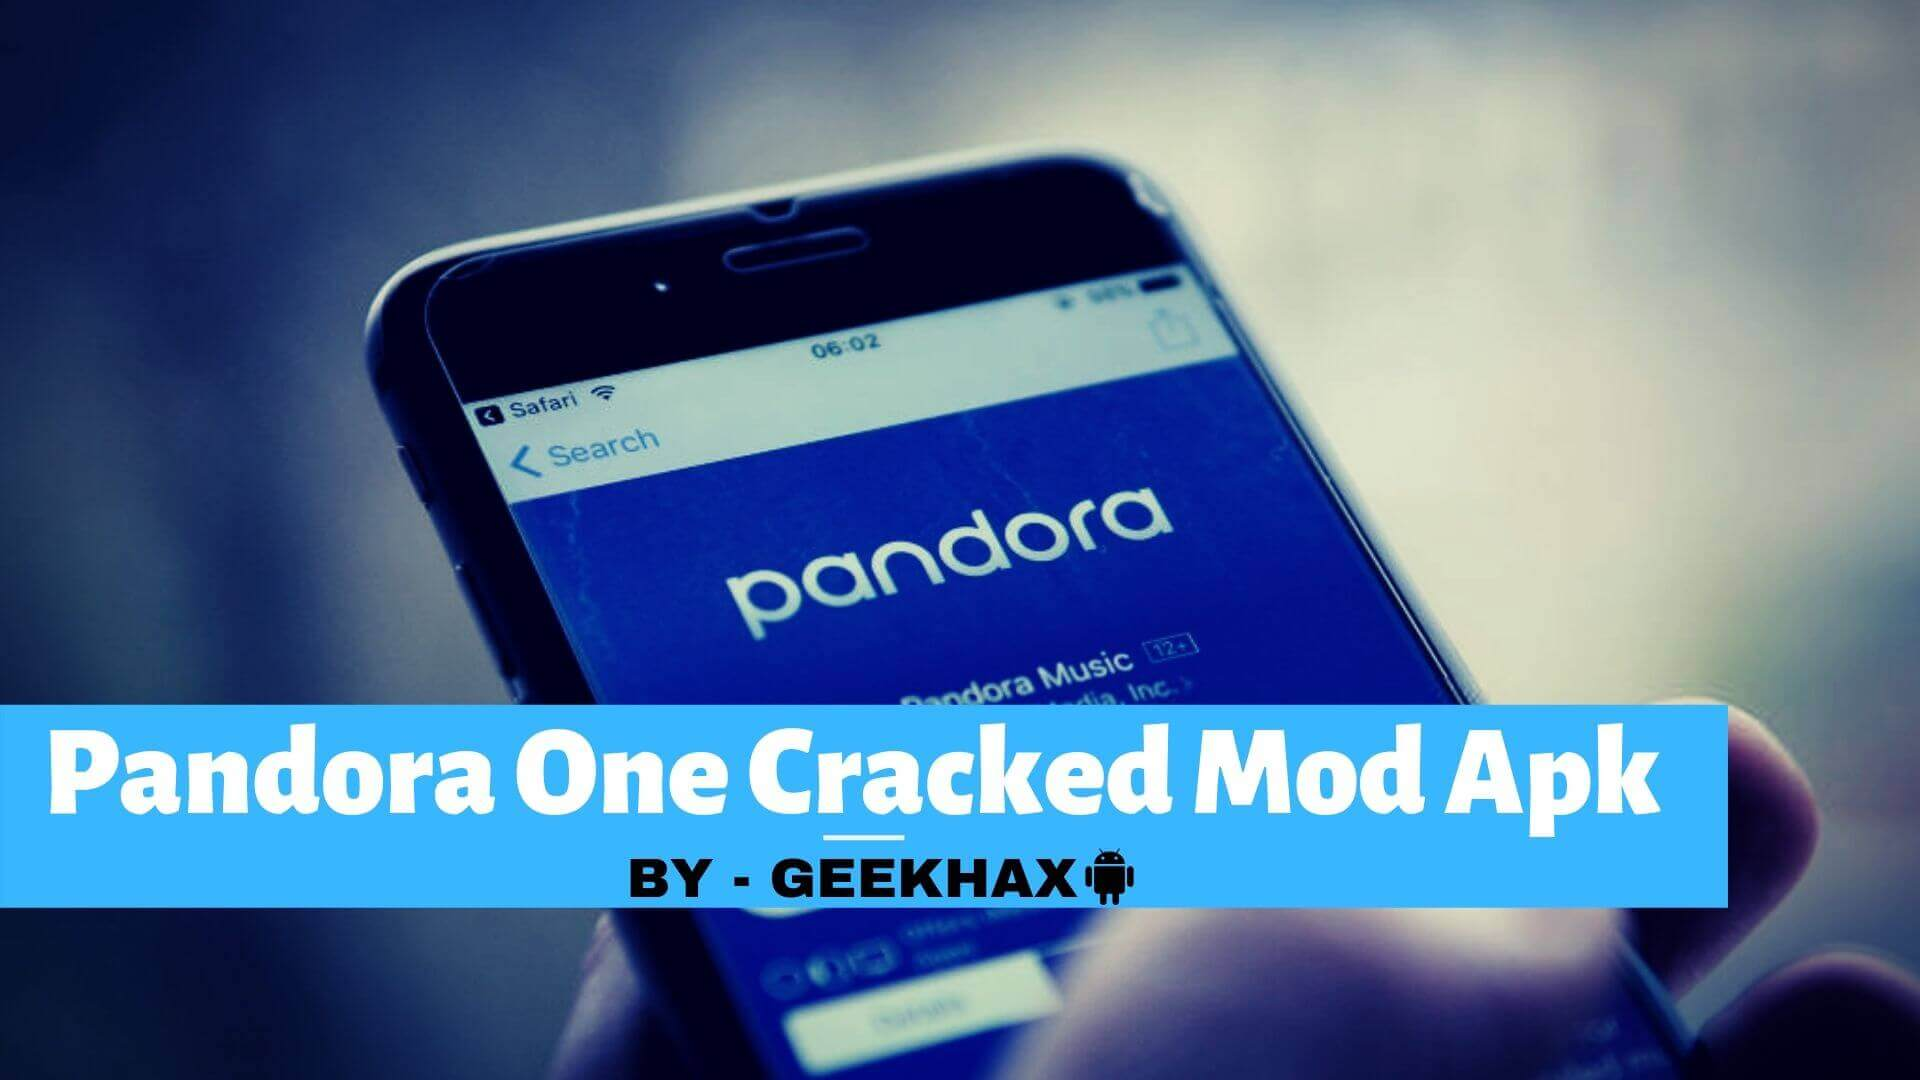 Pandora One Cracked Mod Apk